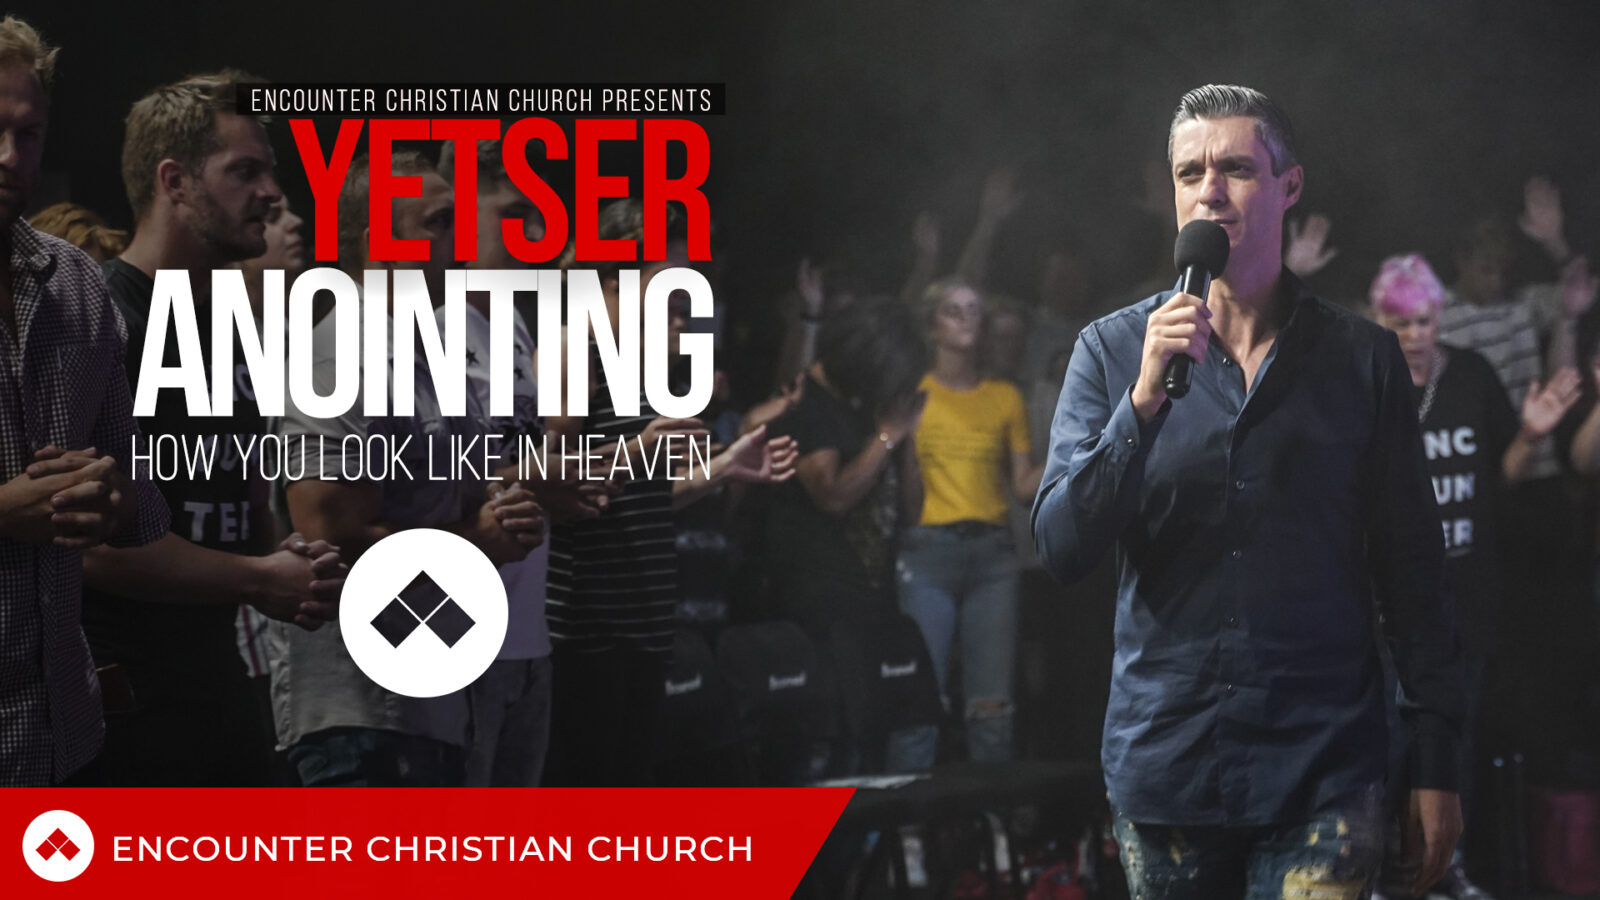 Yetser Anointing – How You Look Like In Heaven